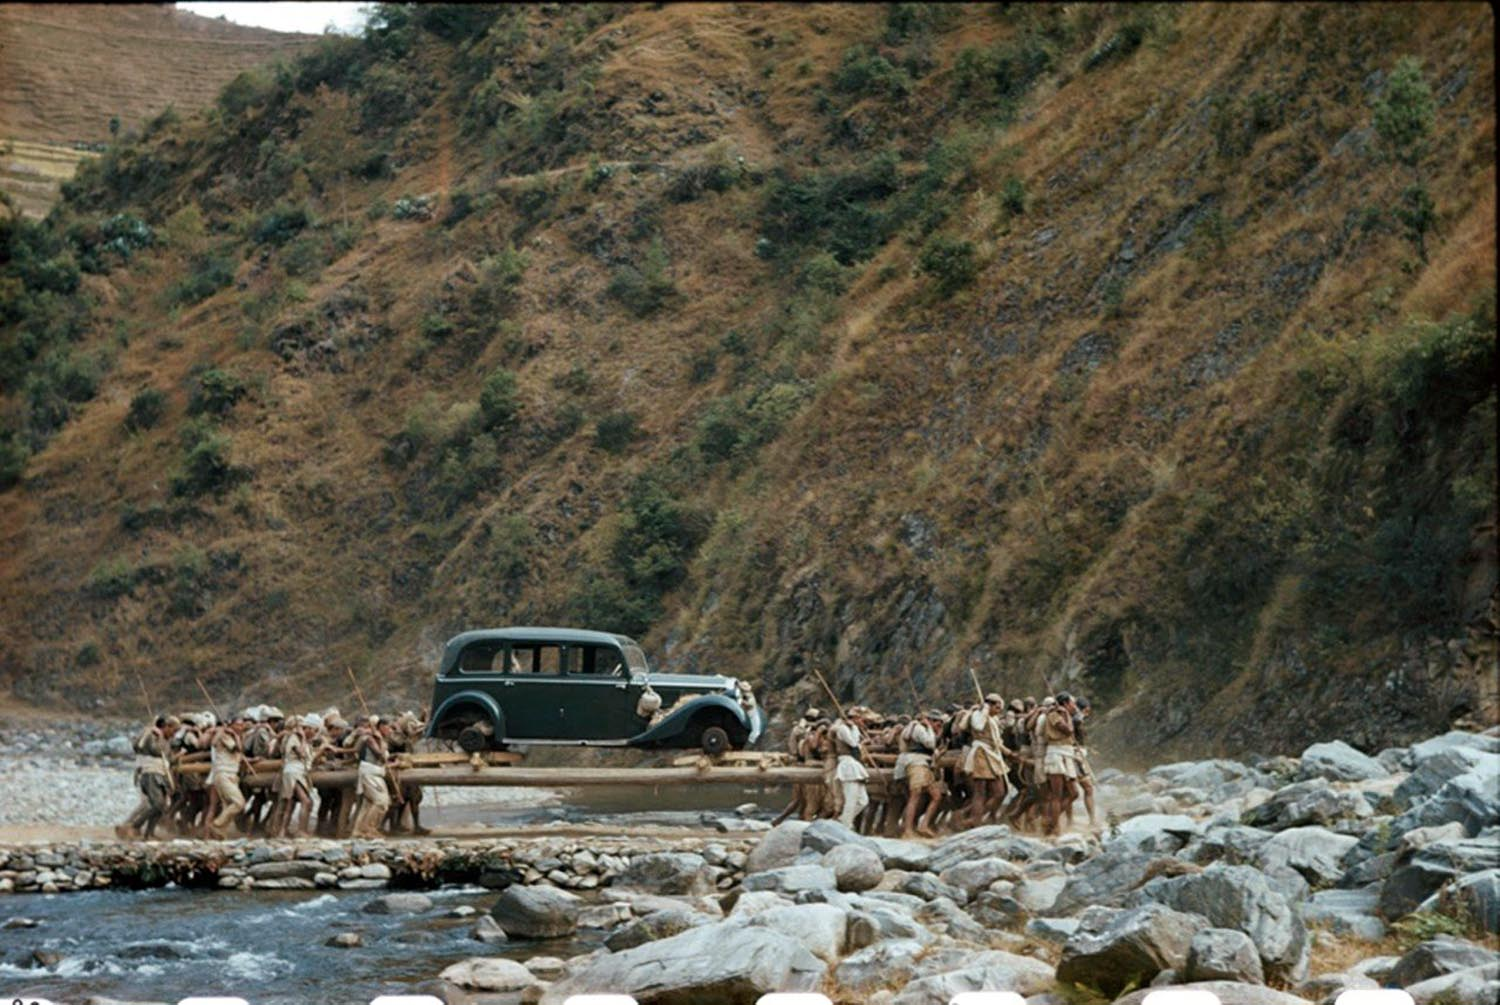 A team of sixty porters carry an old German-made Mercedes en-route to India, 1948